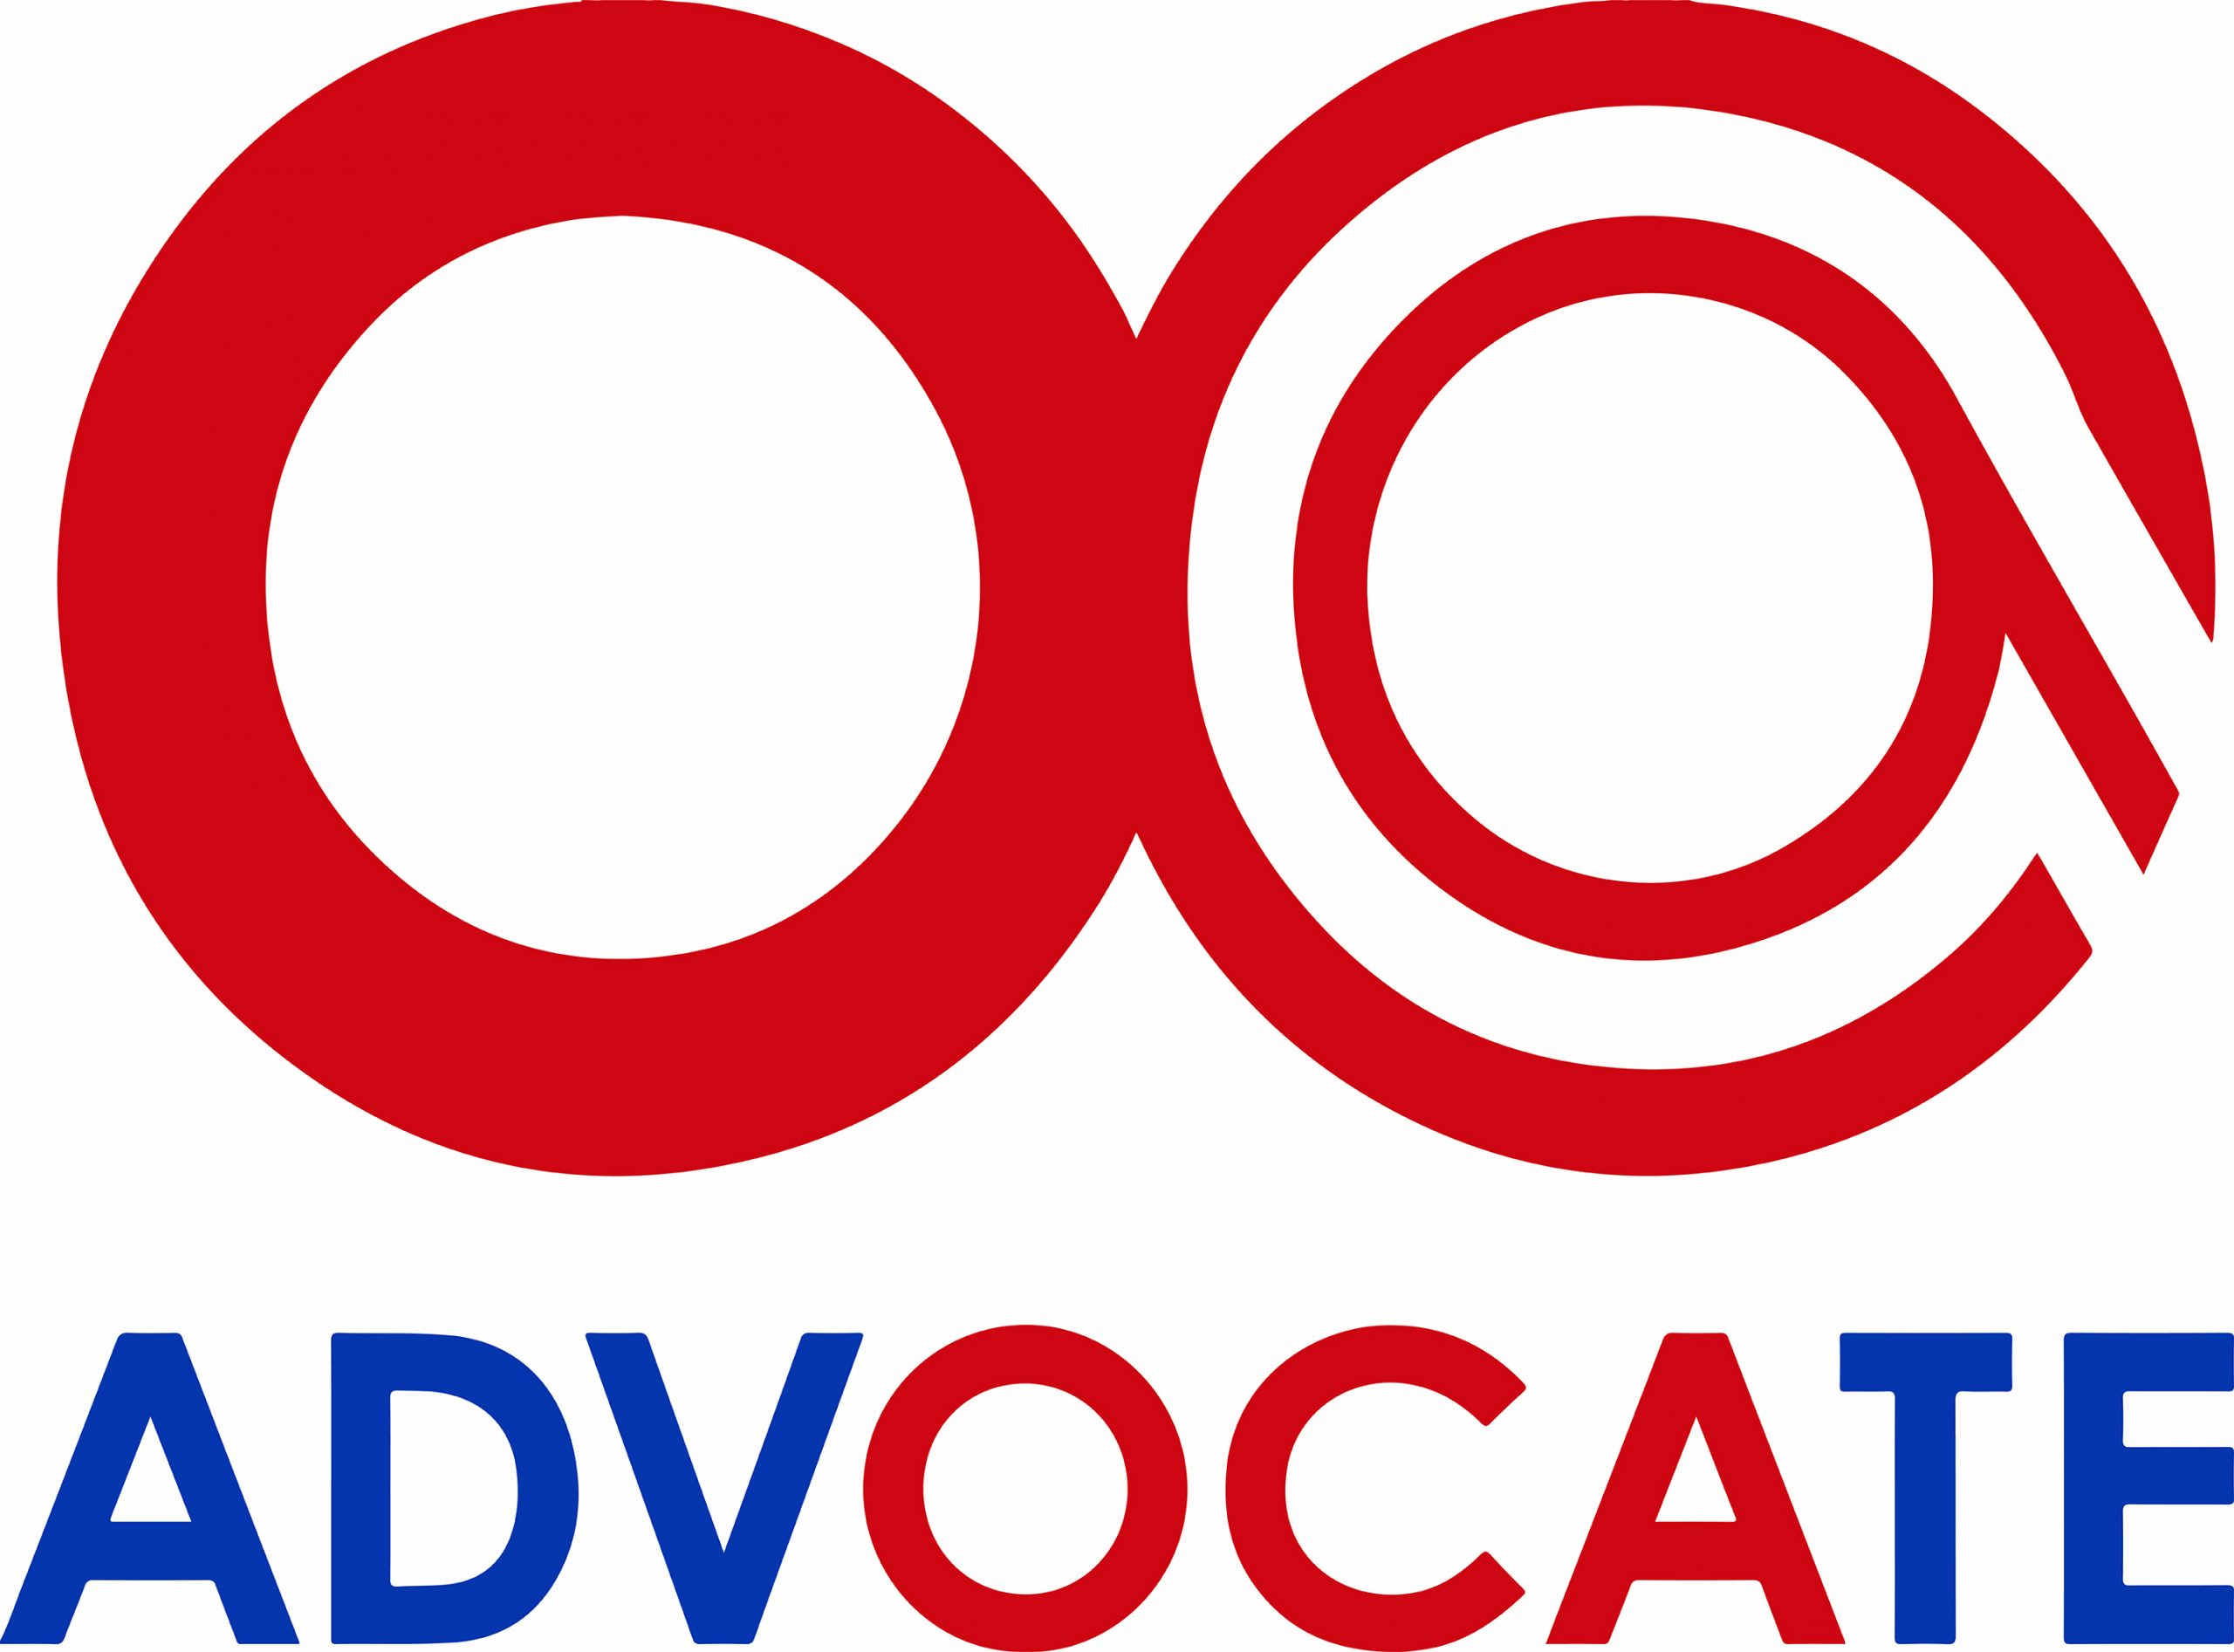 OCA - Asian Pacific American Advocates logo